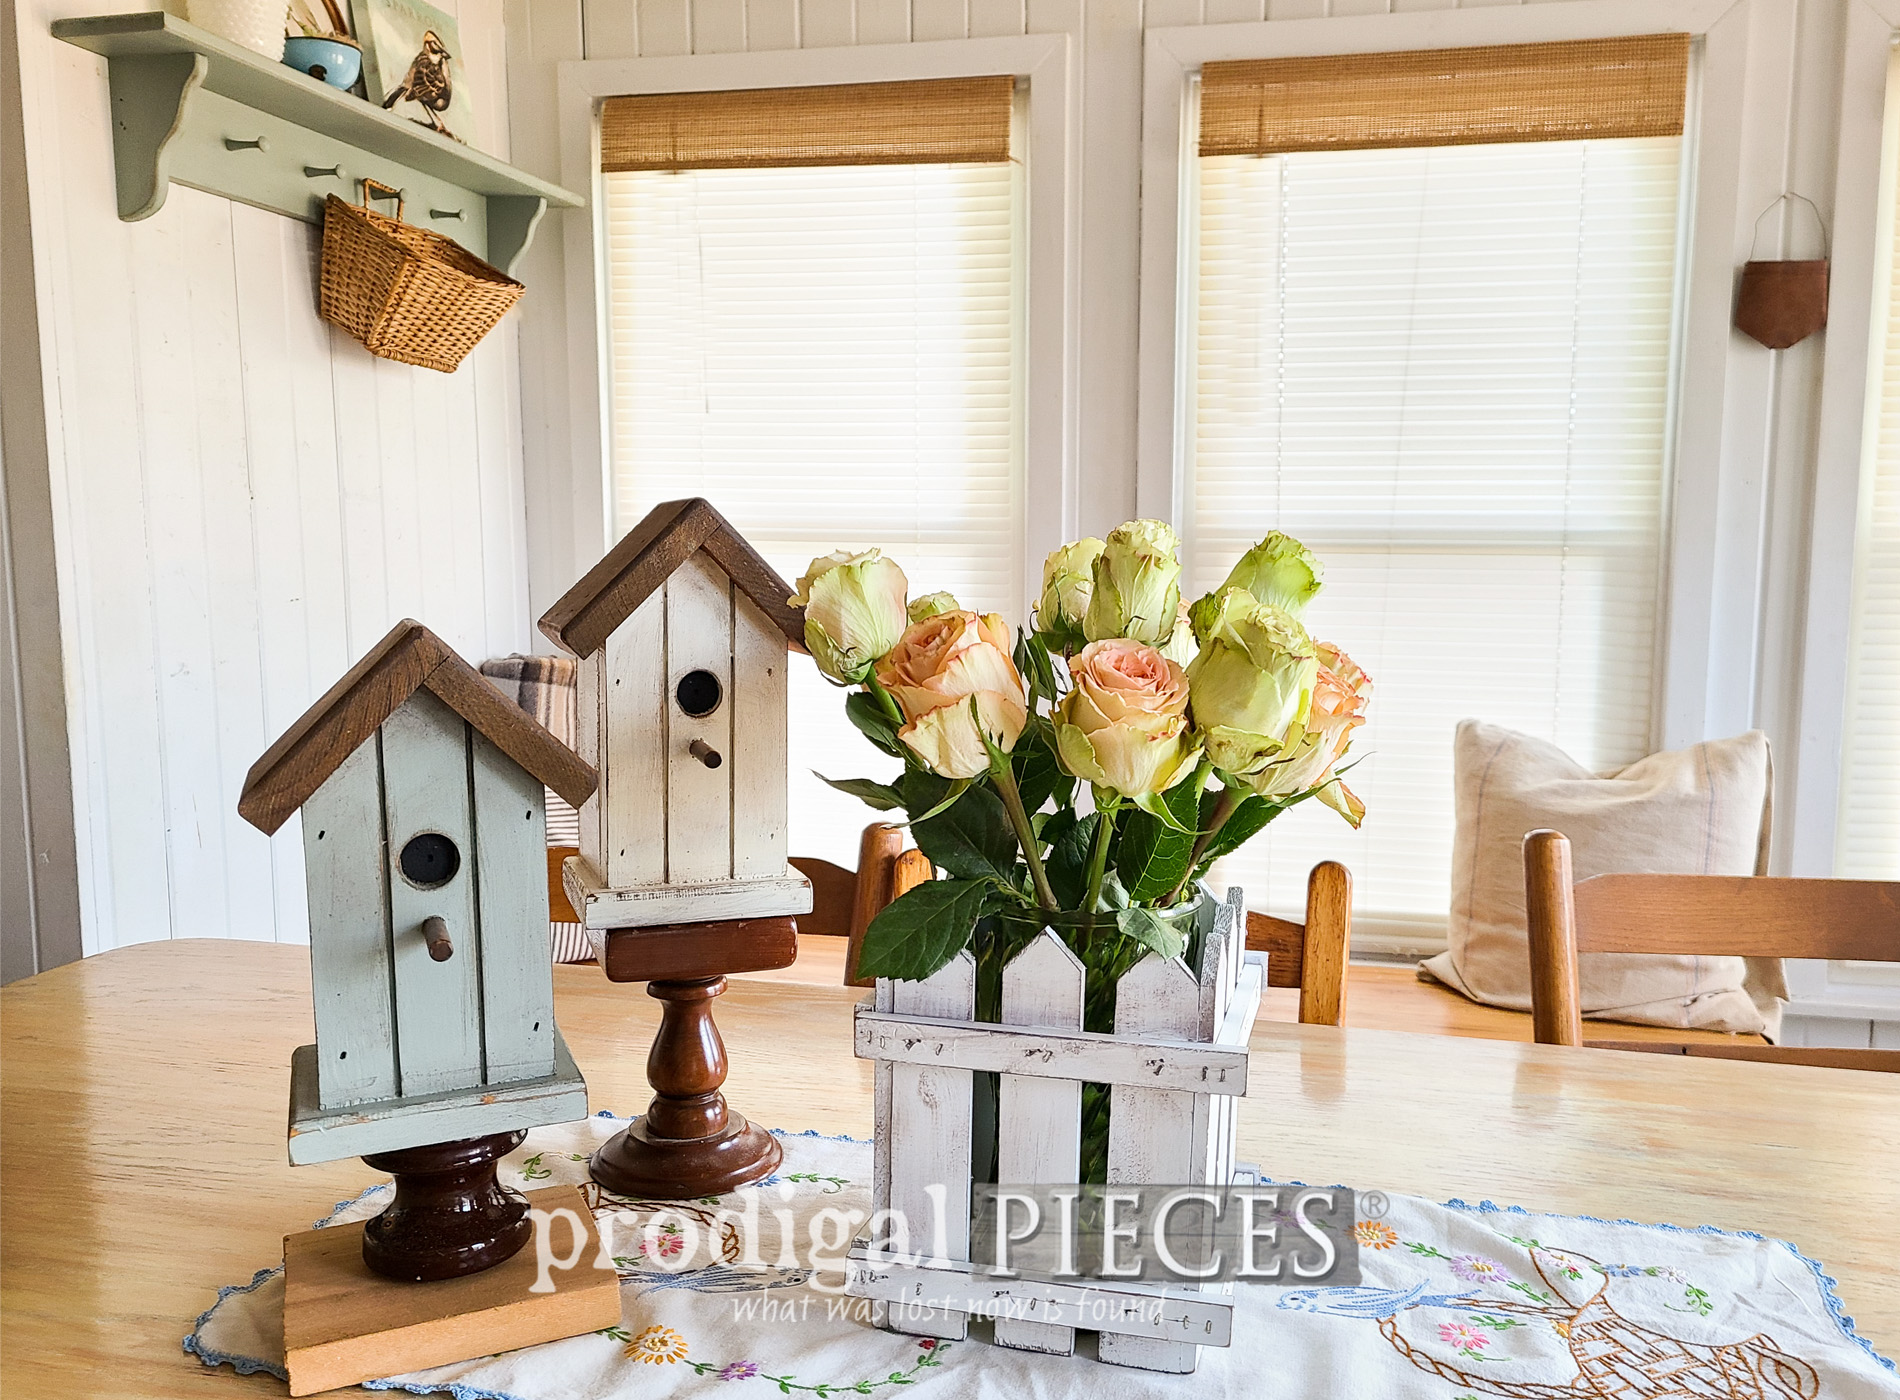 Featured Upcycled Vintage Shelf into 4 Home Decor Projects by Larissa of Prodigal Pieces | prodigalpieces.com #prodigalpieces #home #diy #vintage #home #homedecor